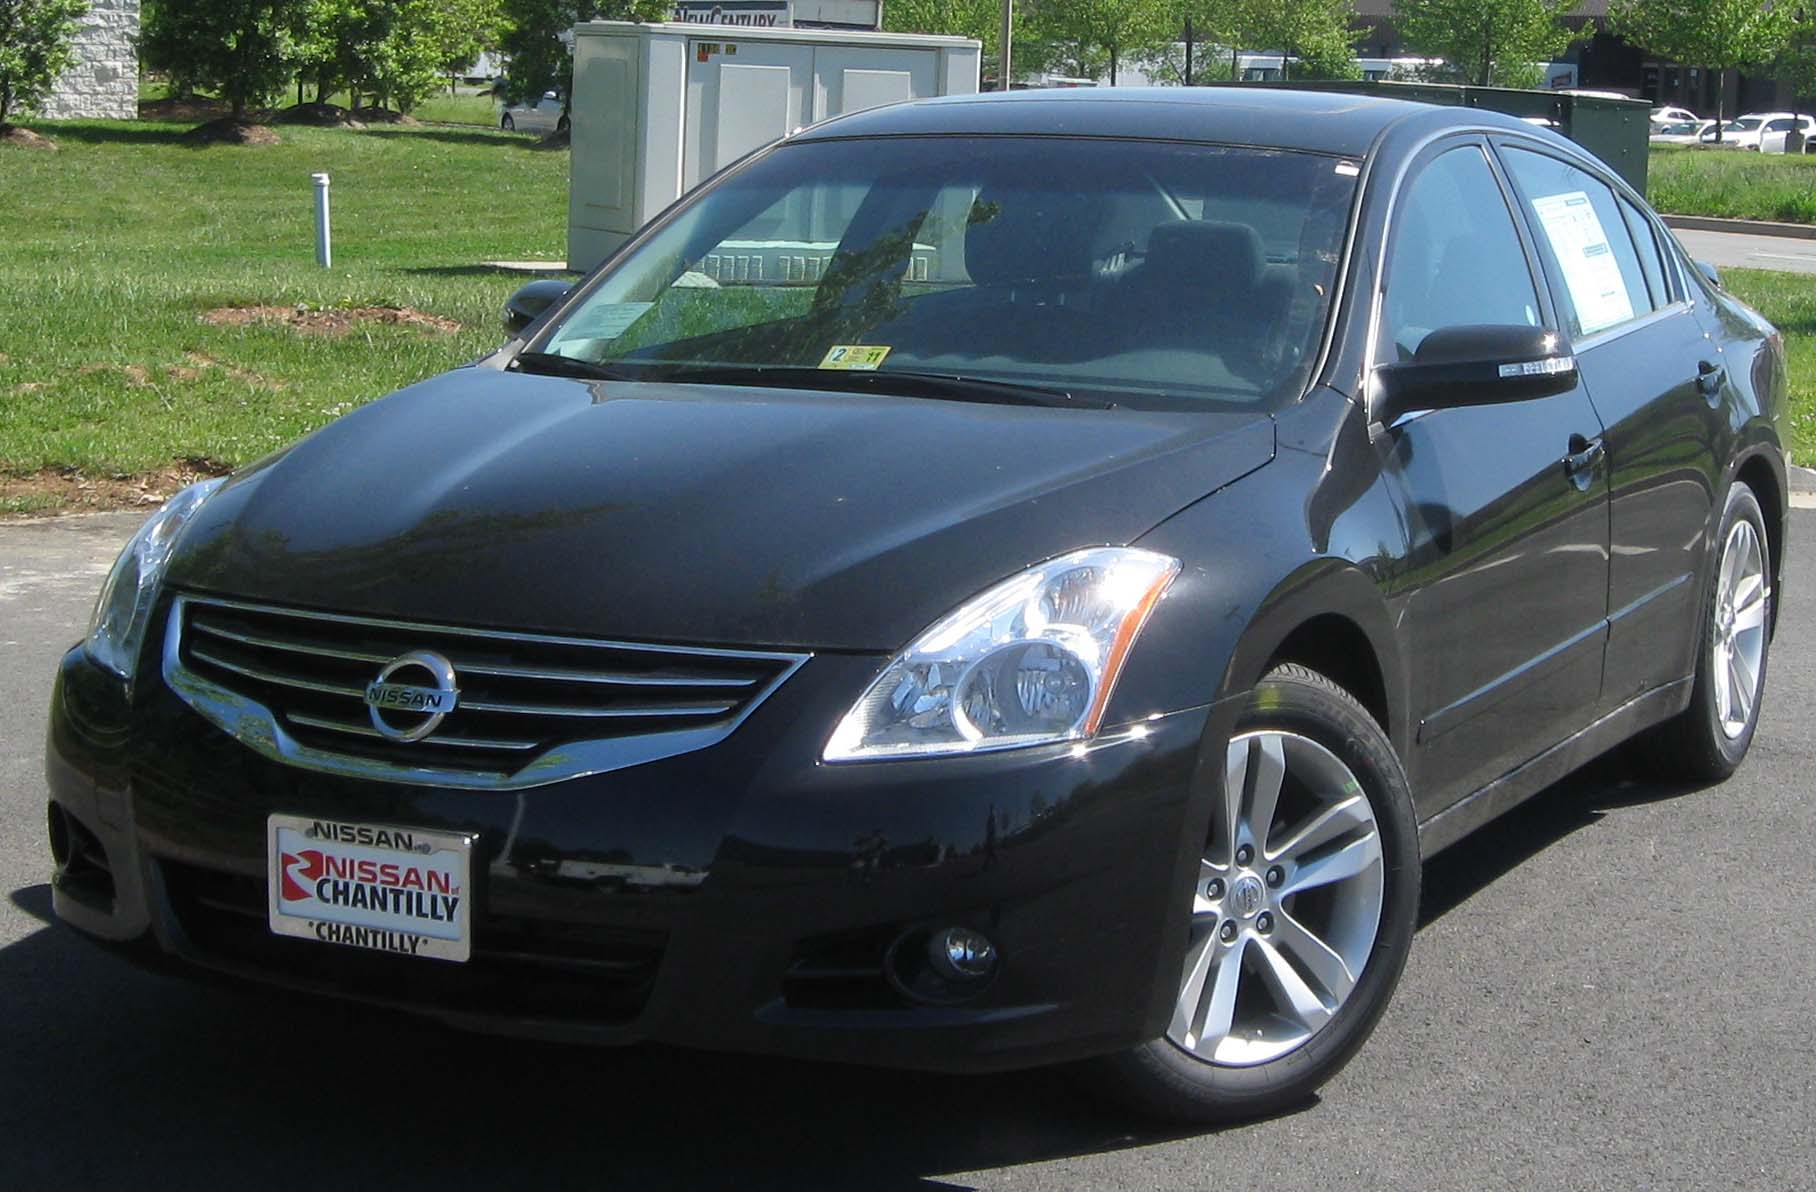 2011 Nissan Altima Iv Pictures Information And Specs Auto Wire Diagram Wallpaper 3